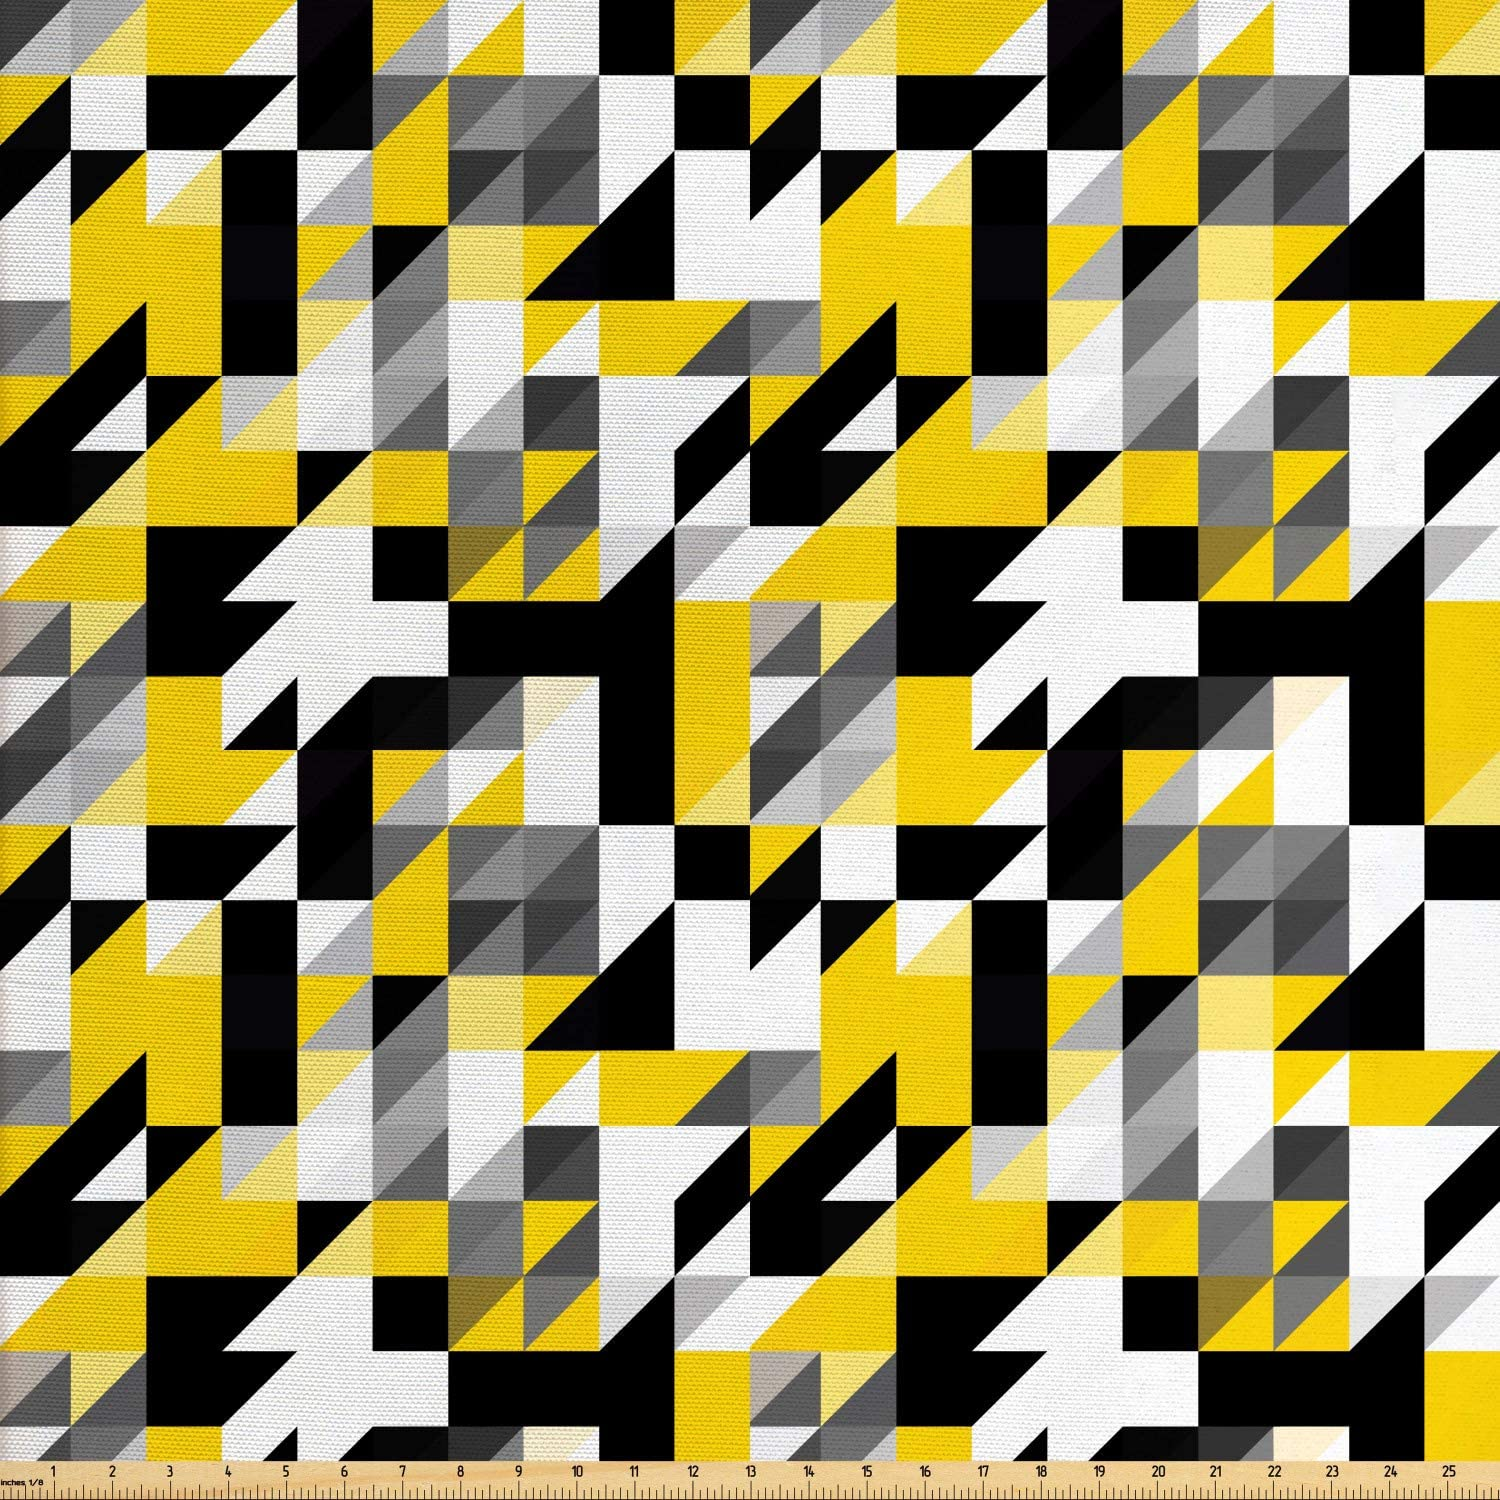 Ambesonne Yellow and White Fabric by The Yard, Geometric Design with Triangles Squares and Houndstooh Inspiration, Decorative Fabric for Upholstery and Home Accents, 1 Yard, Yellow Black